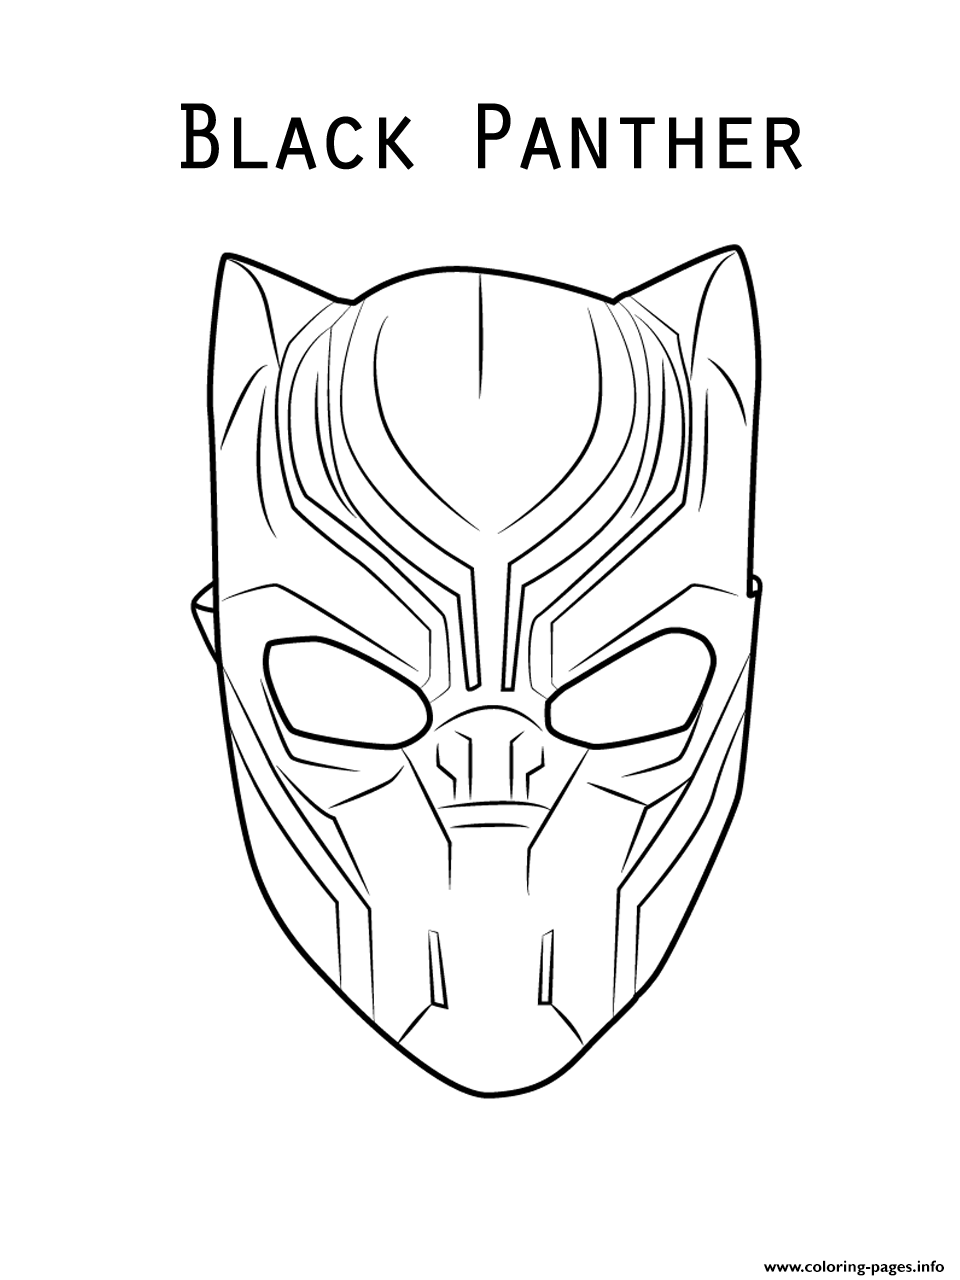 Print marvel movie black panther mask coloring pages black panther